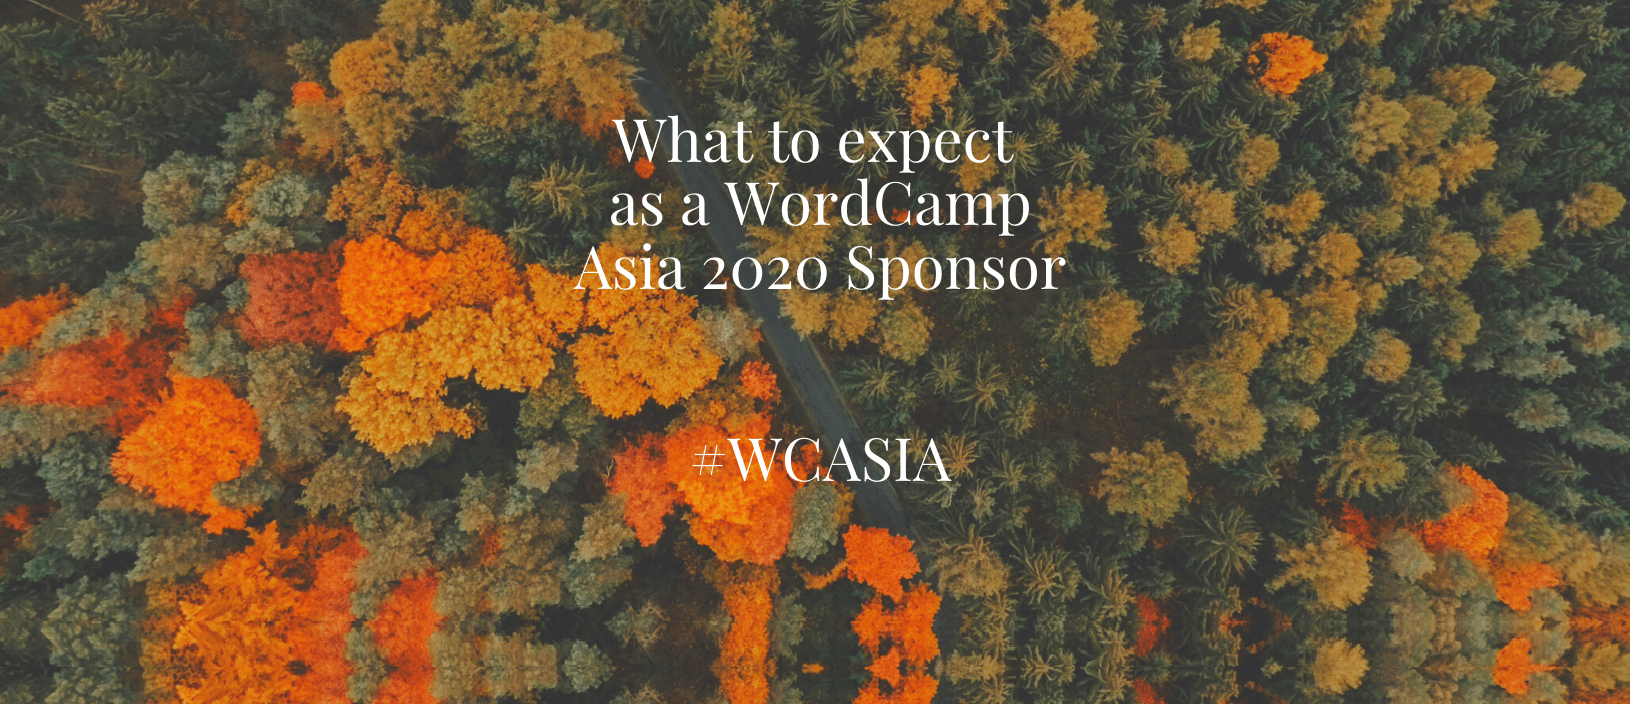 What to expect as a WordCamp Asia 2020 Sponsor #WCASIA